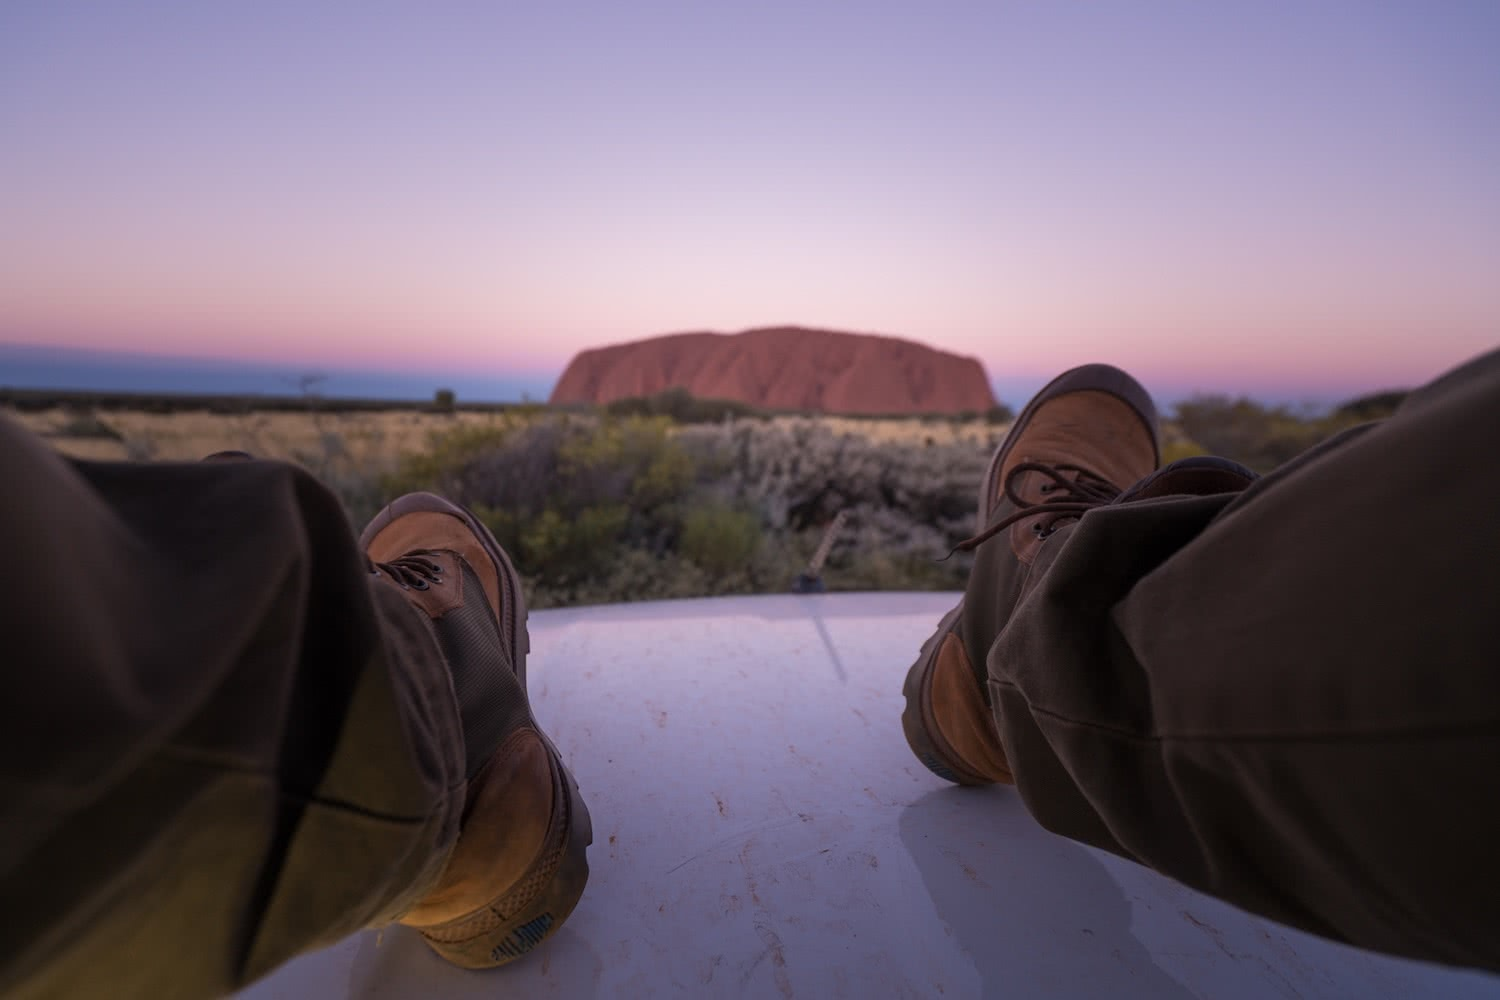 kings canyon to uluru, rob mulally, outback way, longest shortcut, outback, red centre, uluru